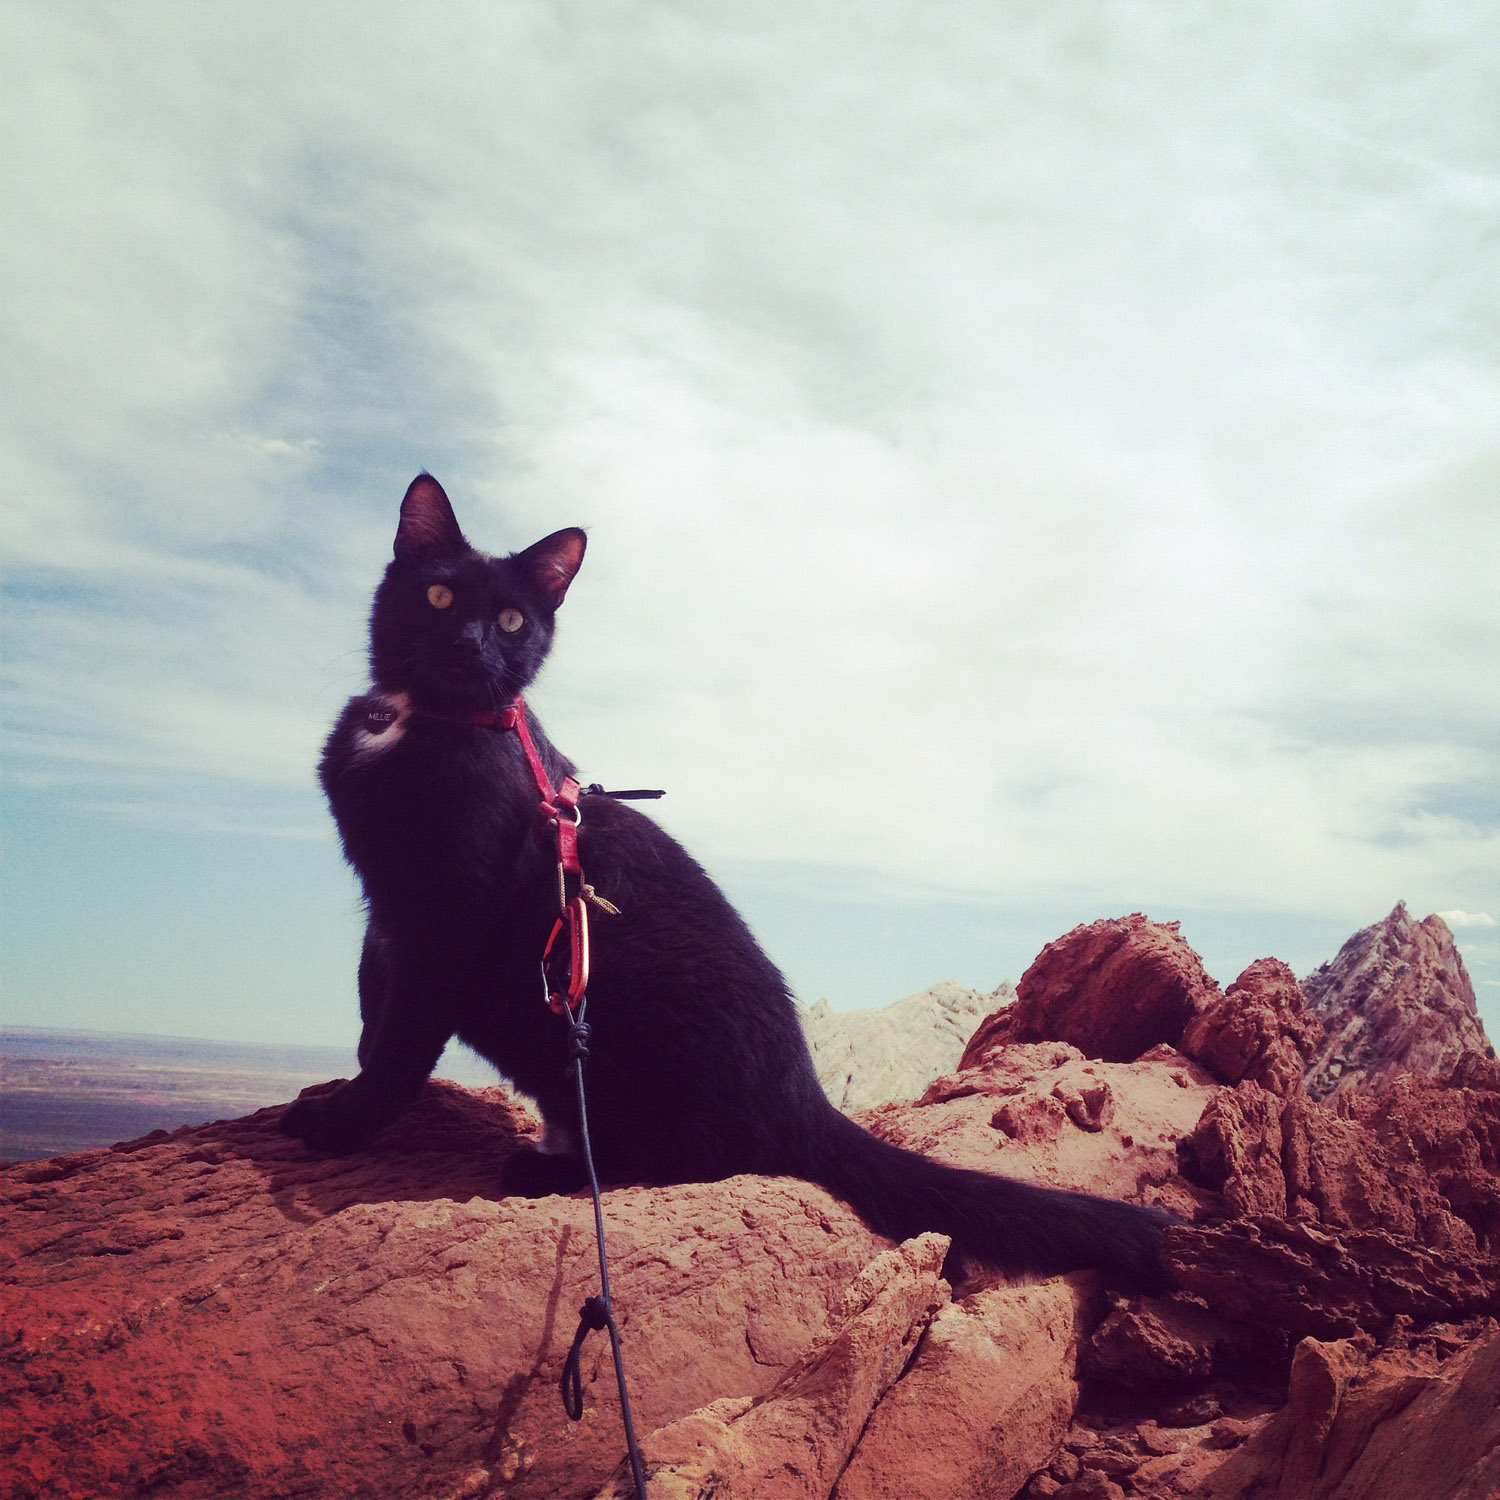 cat climbed a mountain